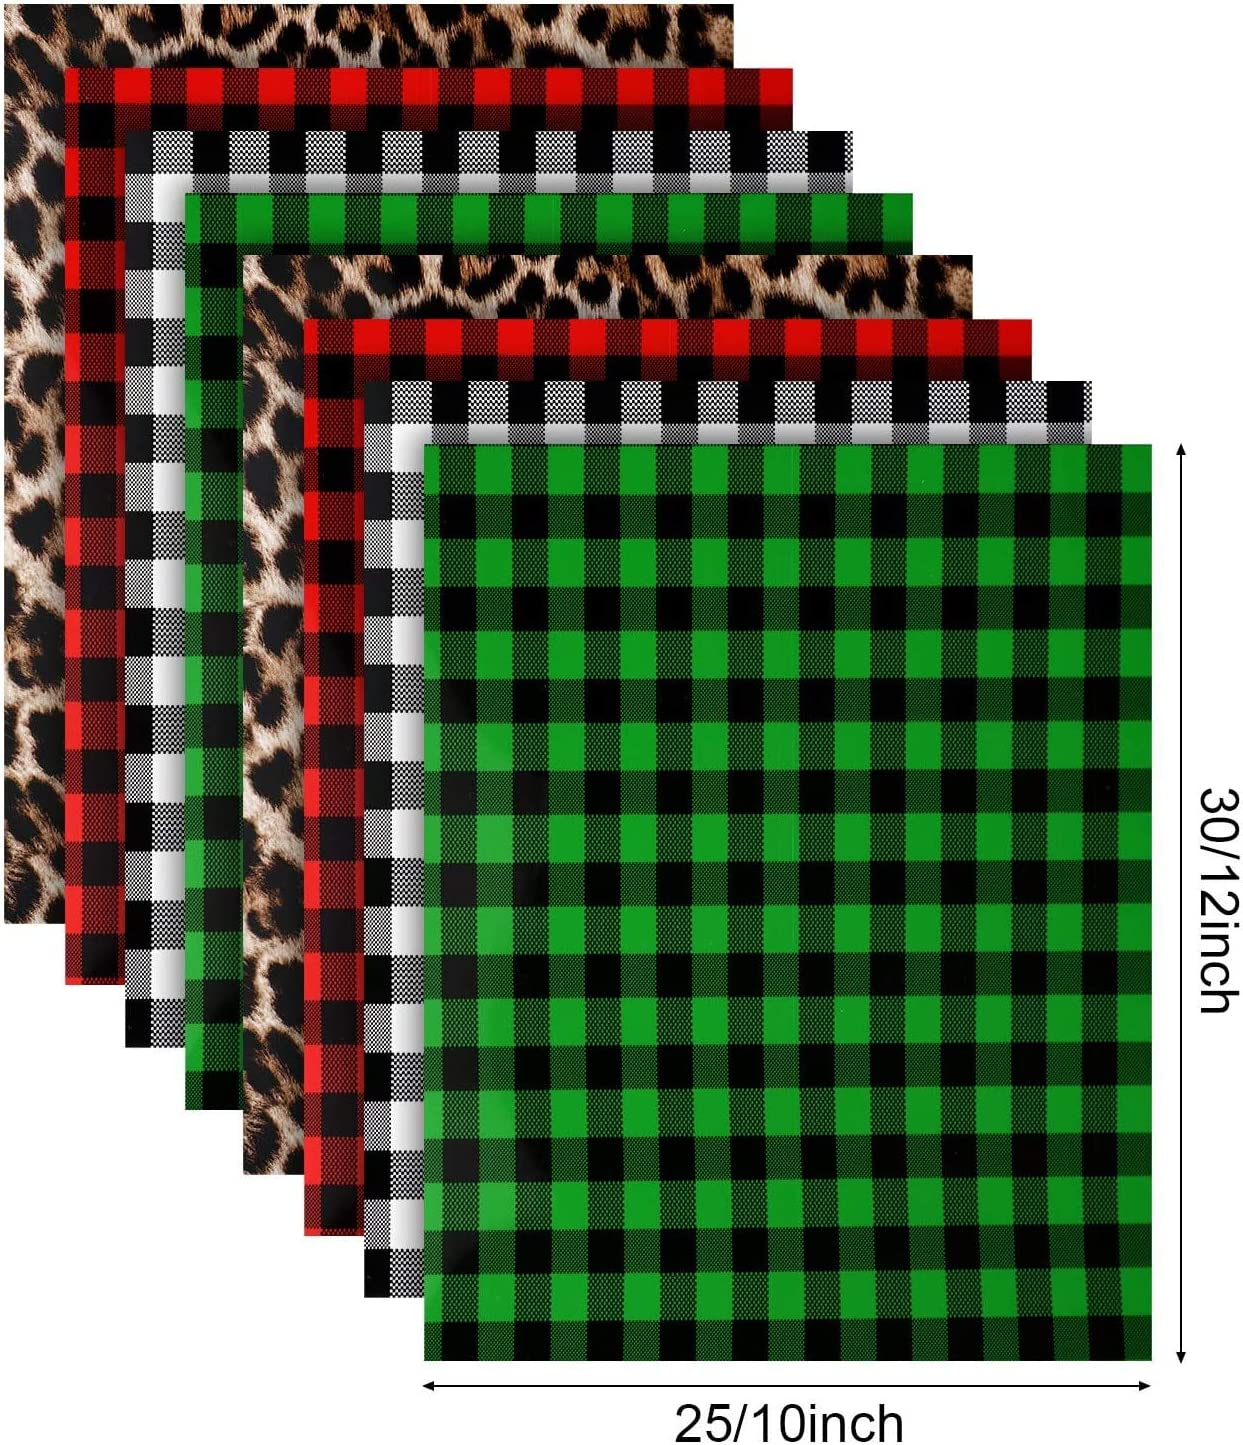 8 Sheets Christmas Buffalo Plaid HTV Heat Transfer Vinyl Leopard Pattern Vinyl Buffalo Vinyl for DIY T-Shirts Bag Hat Pillow Crafts Red, White-Black, Green, Leopard 12 x 10 Inch